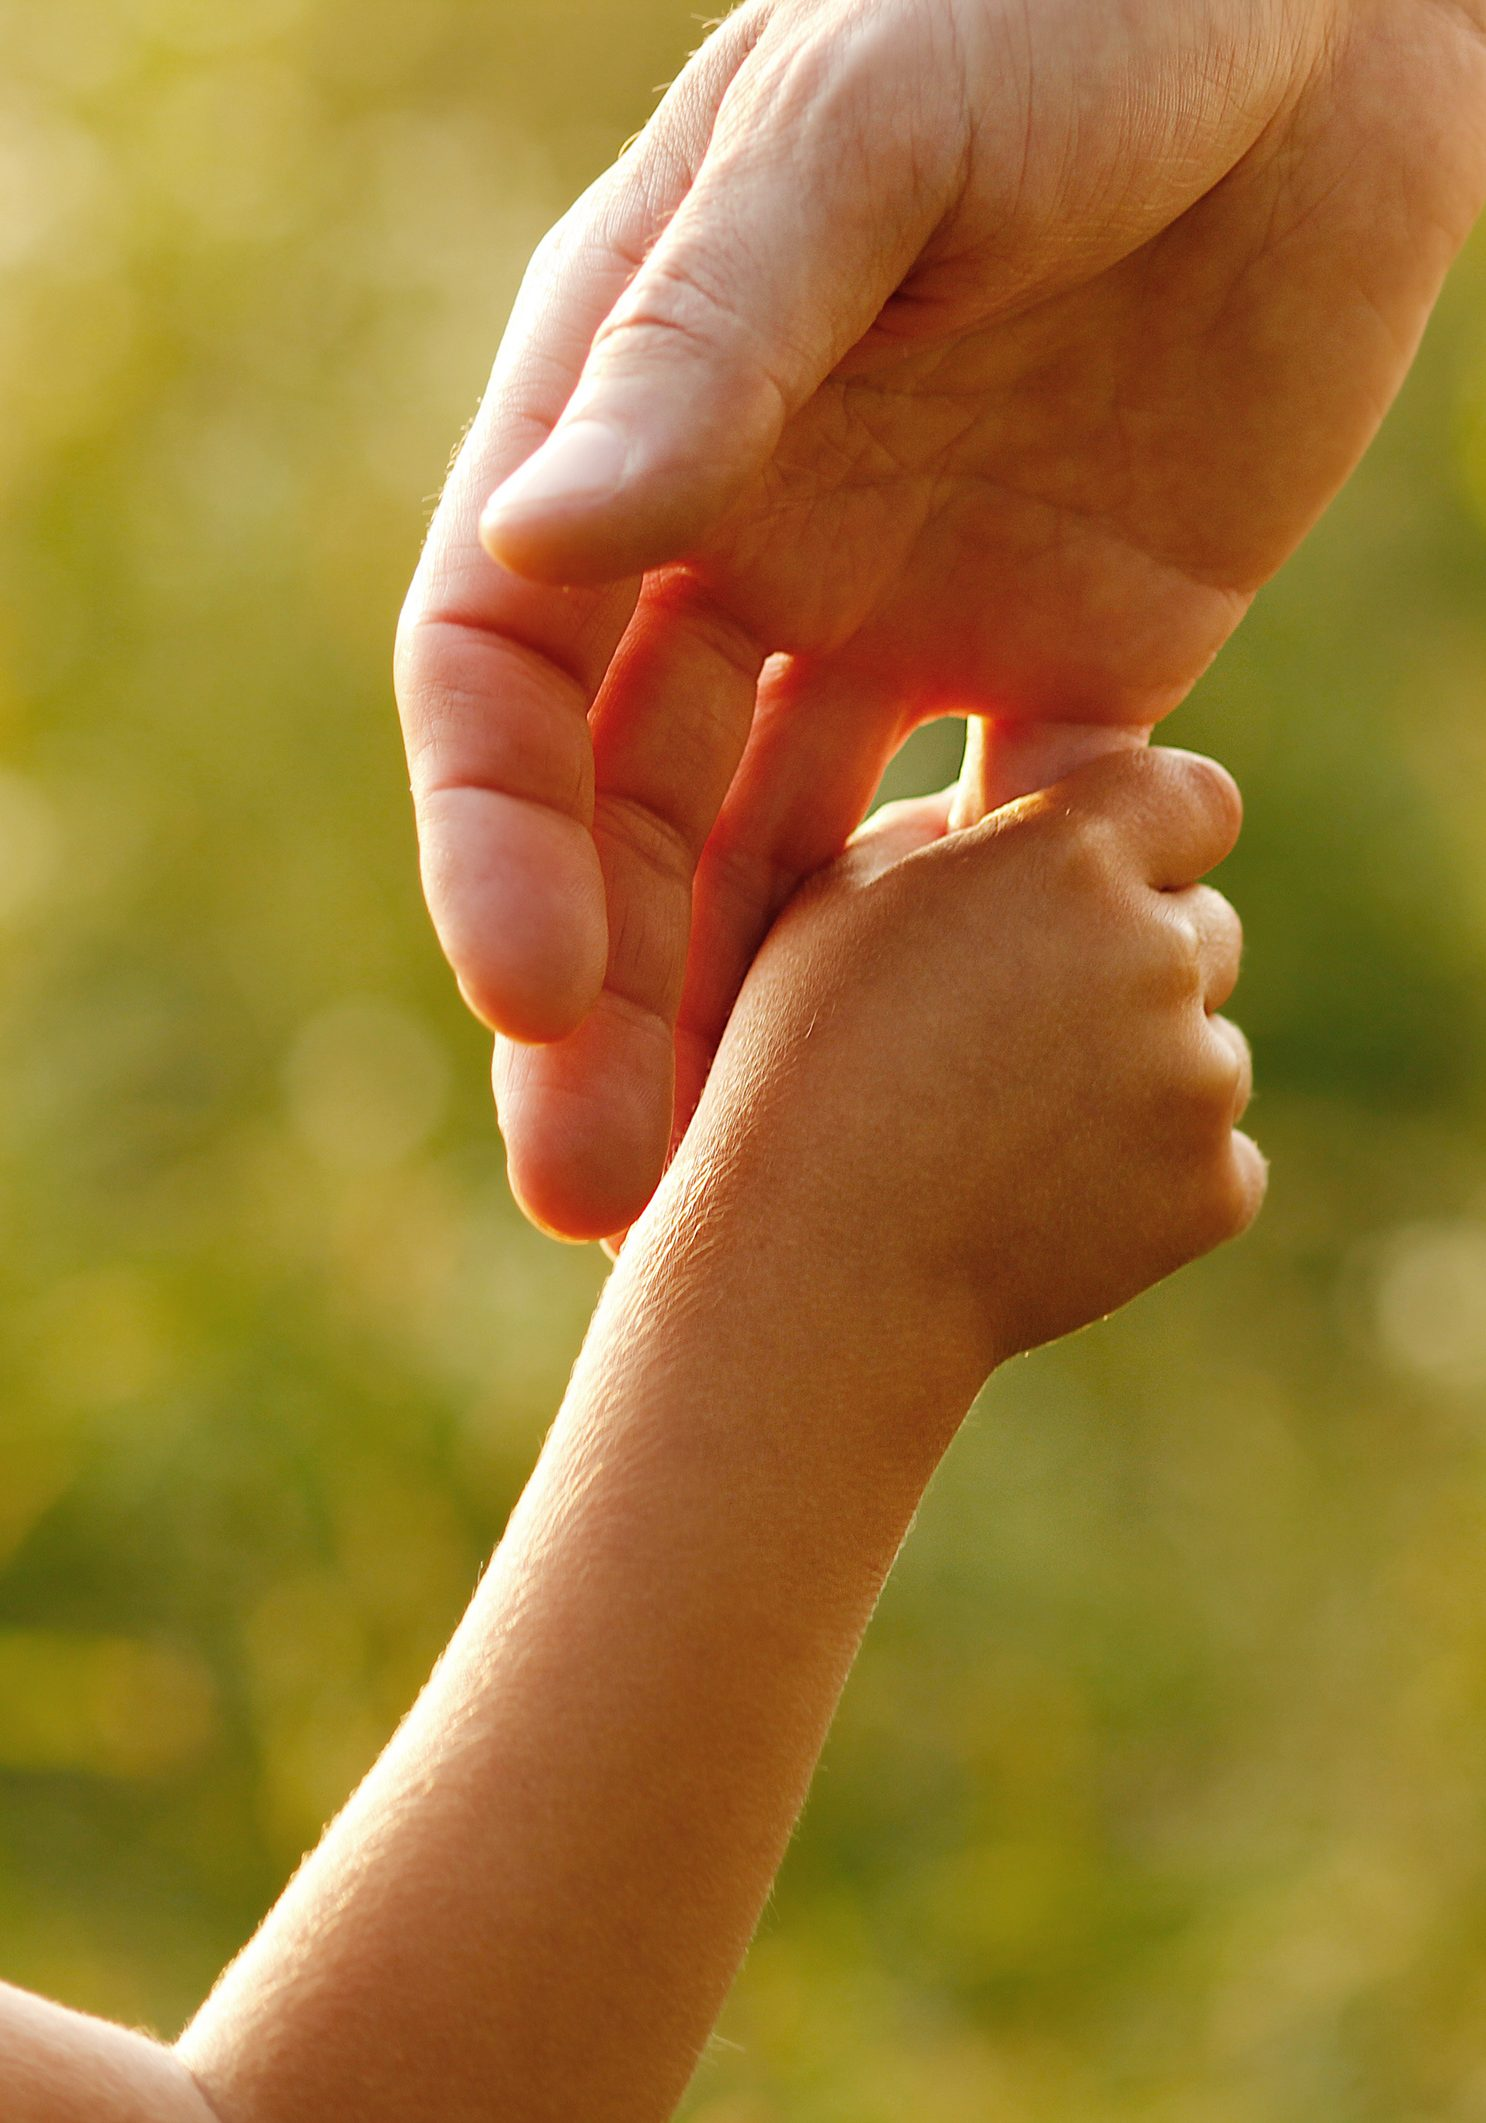 A parent holding the hand of their small child in the grass.